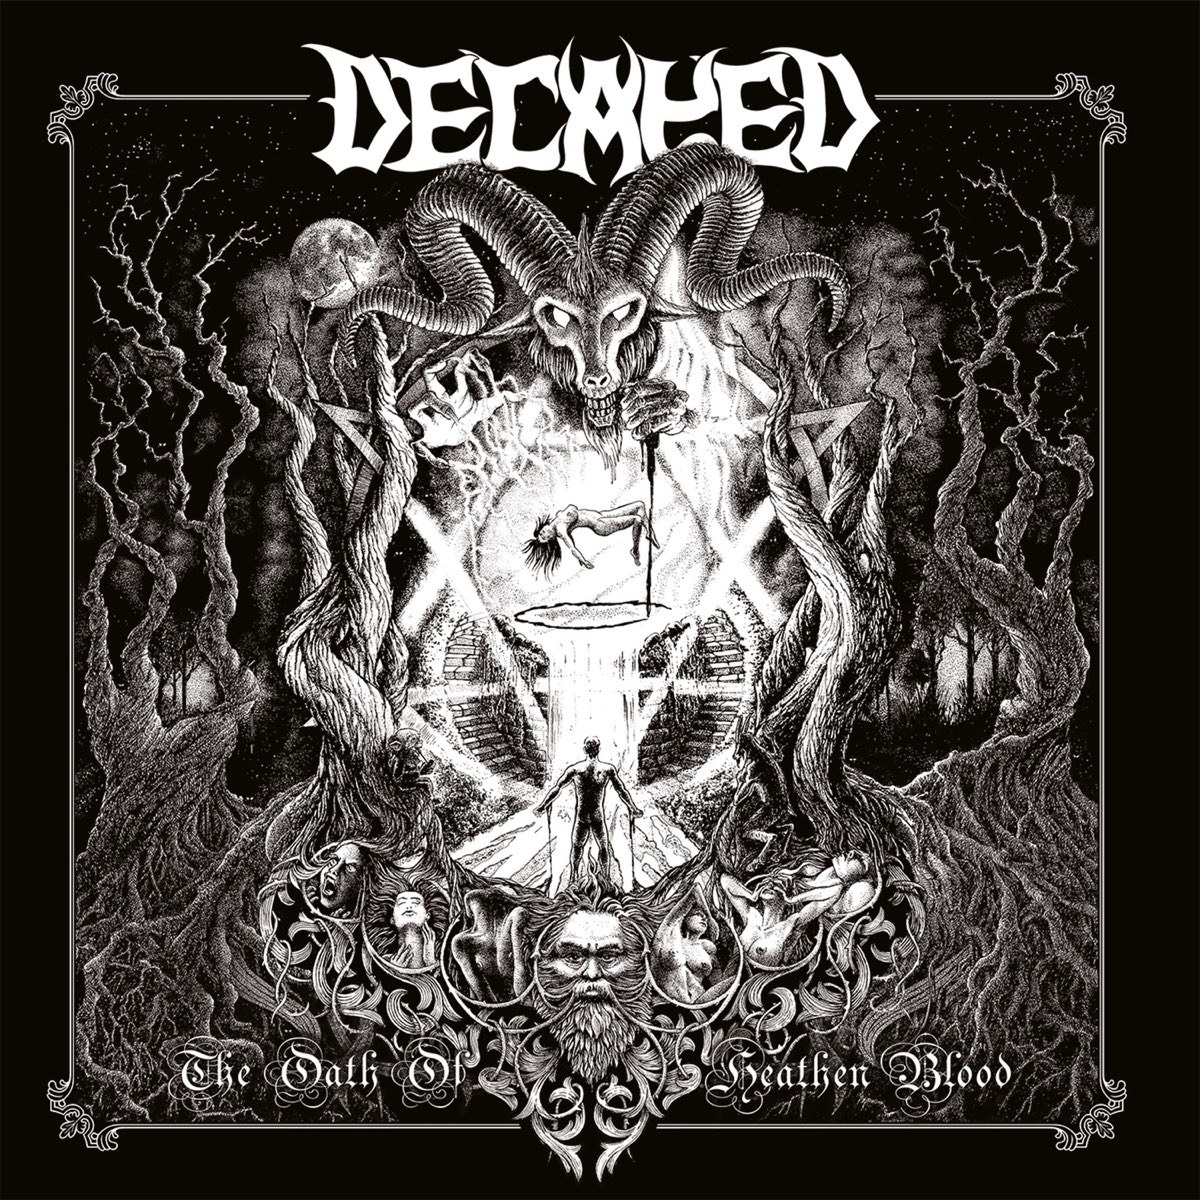 Review for Decayed - The Oath of Heathen Blood